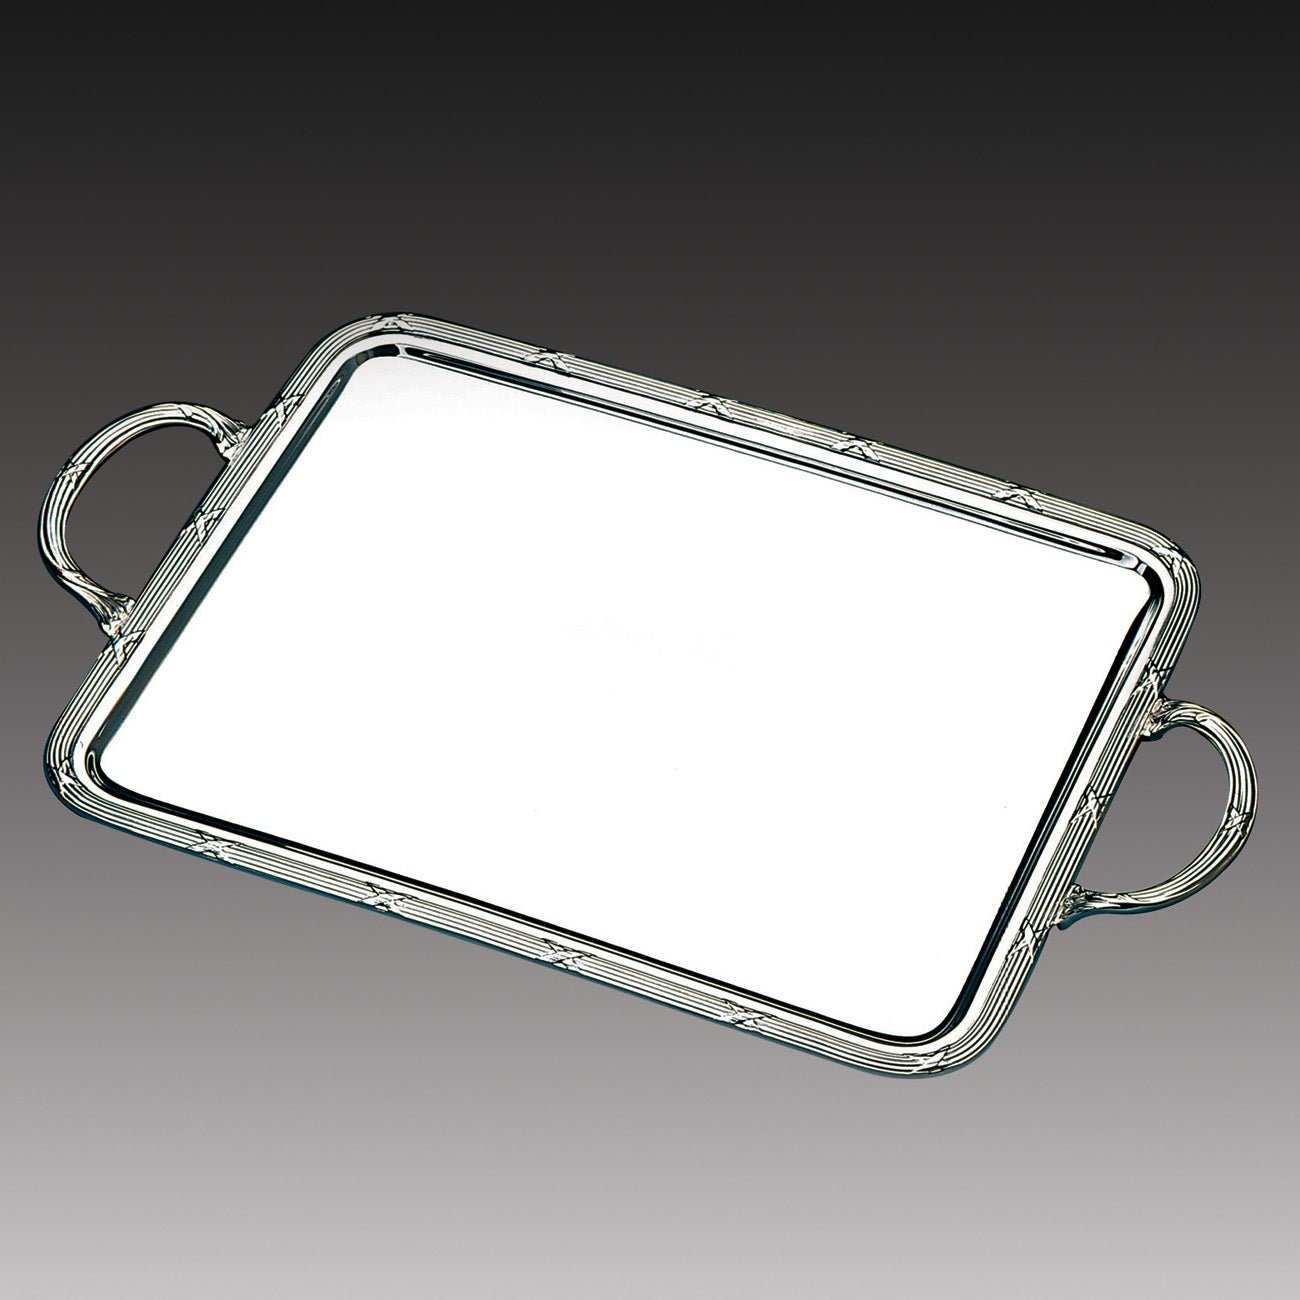 Wolff Stainless Steel Large Rectangular Serving Tray with Handles